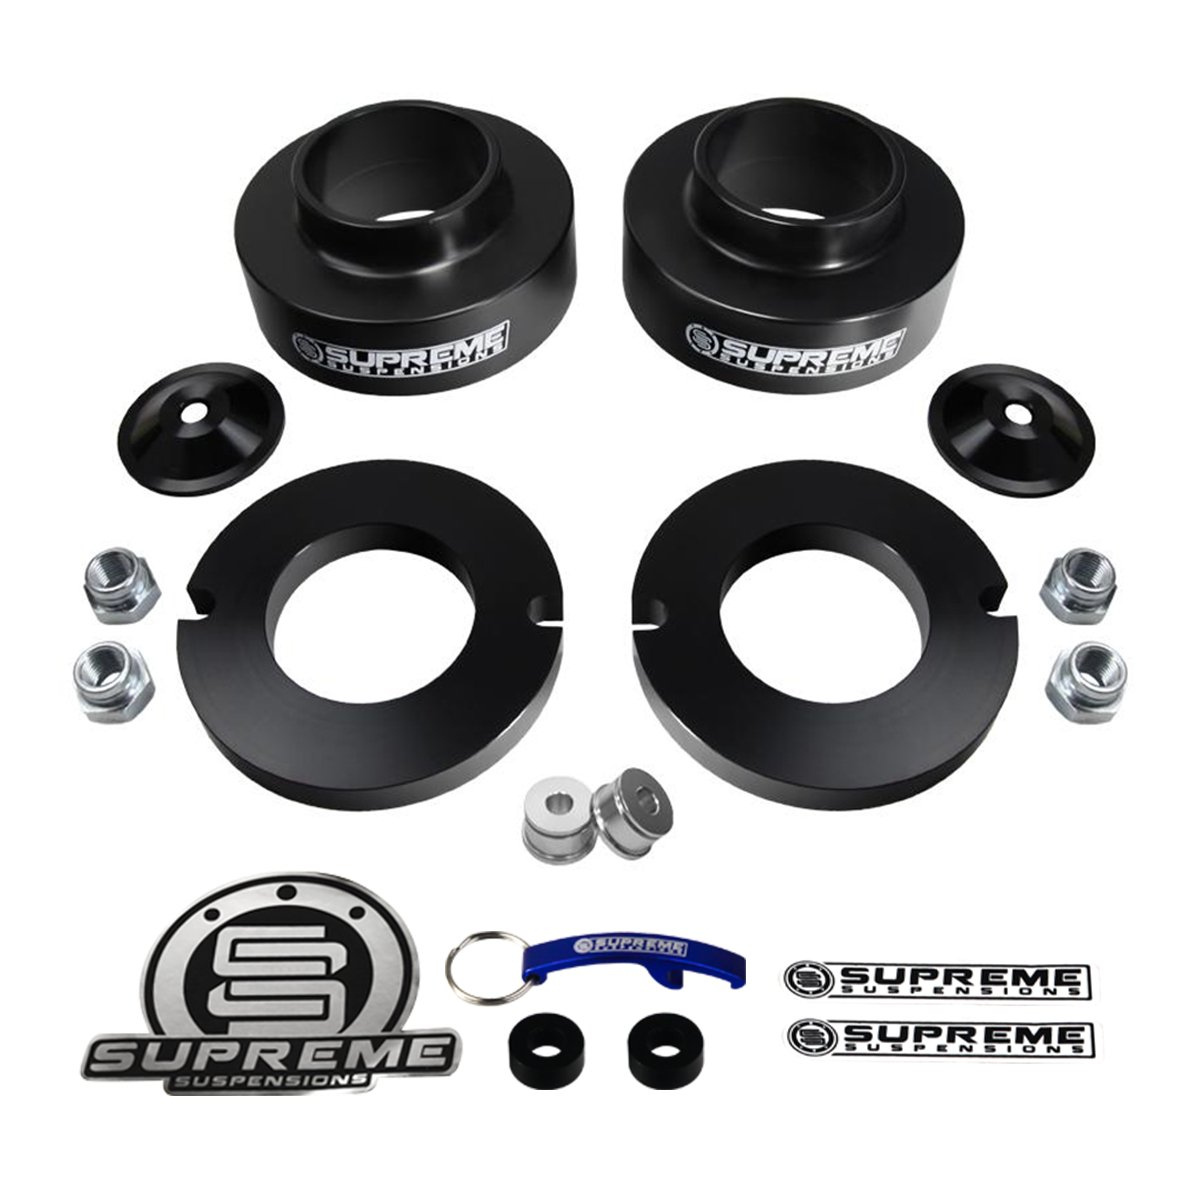 Supreme Suspensions - Chevy Trailblazer 2.5' Front Leveling Lift Kit